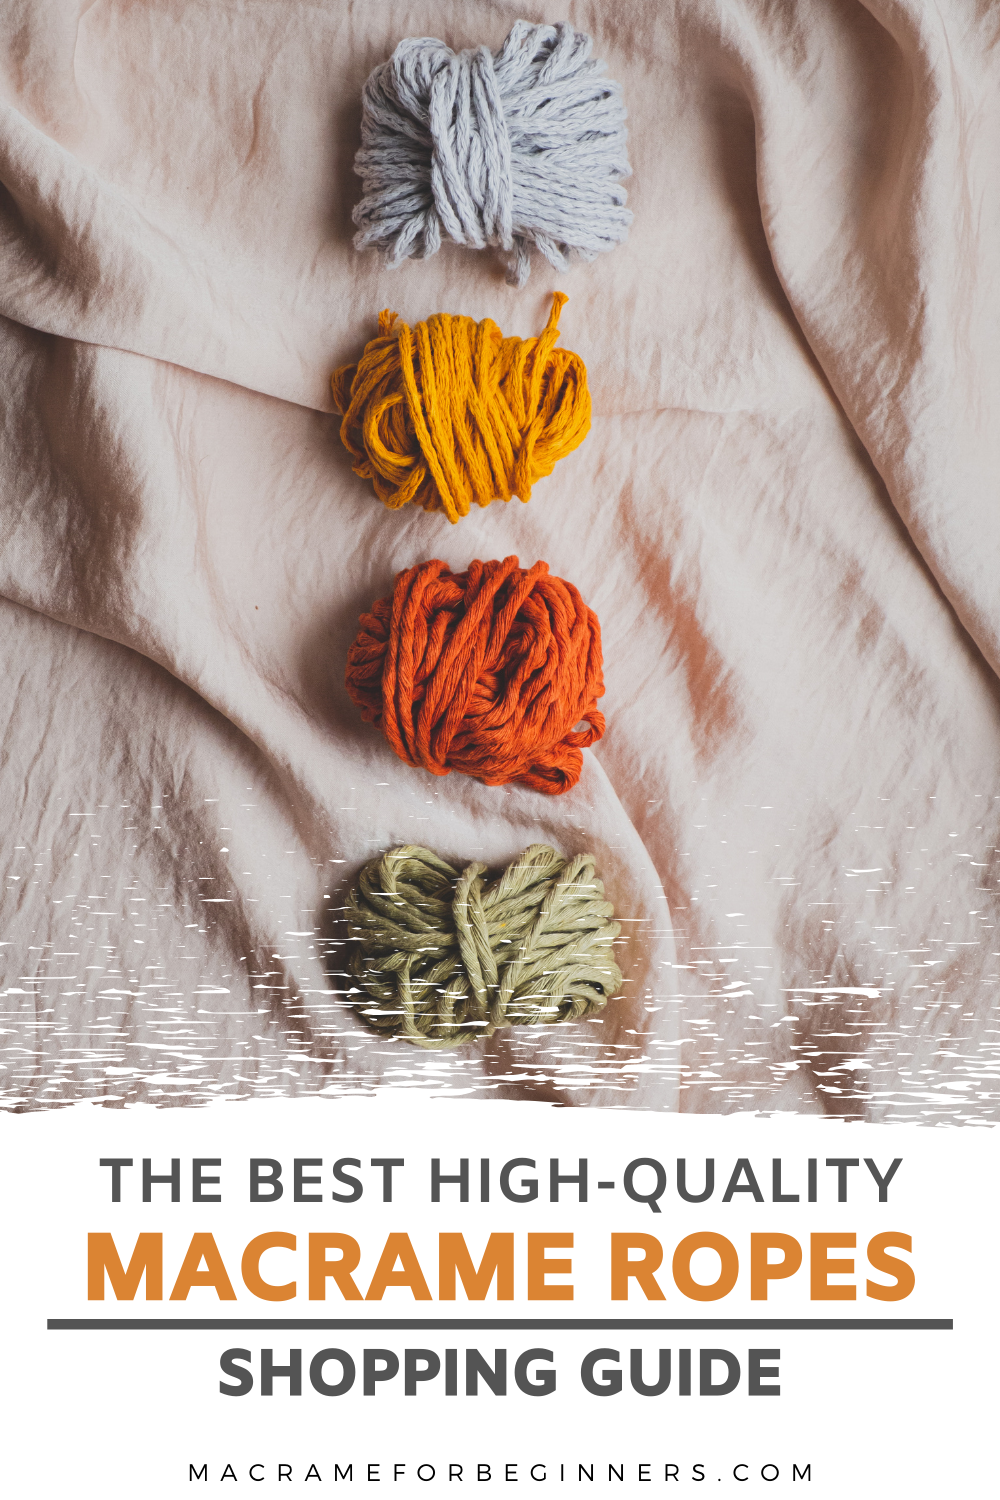 Looking for the best high-quality Macrame Ropes, Macrame Cords and Macrame Supplies? Check out my Macrame Shopping Guide to discover all my favorite brands to make your Macrame projects look even more gorgeous! -- Learn how to Macrame in just 5 minutes and get inspired by tons of easy DIY Macrame projects for beginners with video tutorials on macrameforbeginners.com #macrame #macramesupplies #macramecords #macrameropes #macramediy #macrametutorials #macrameprojects #macramepatterns